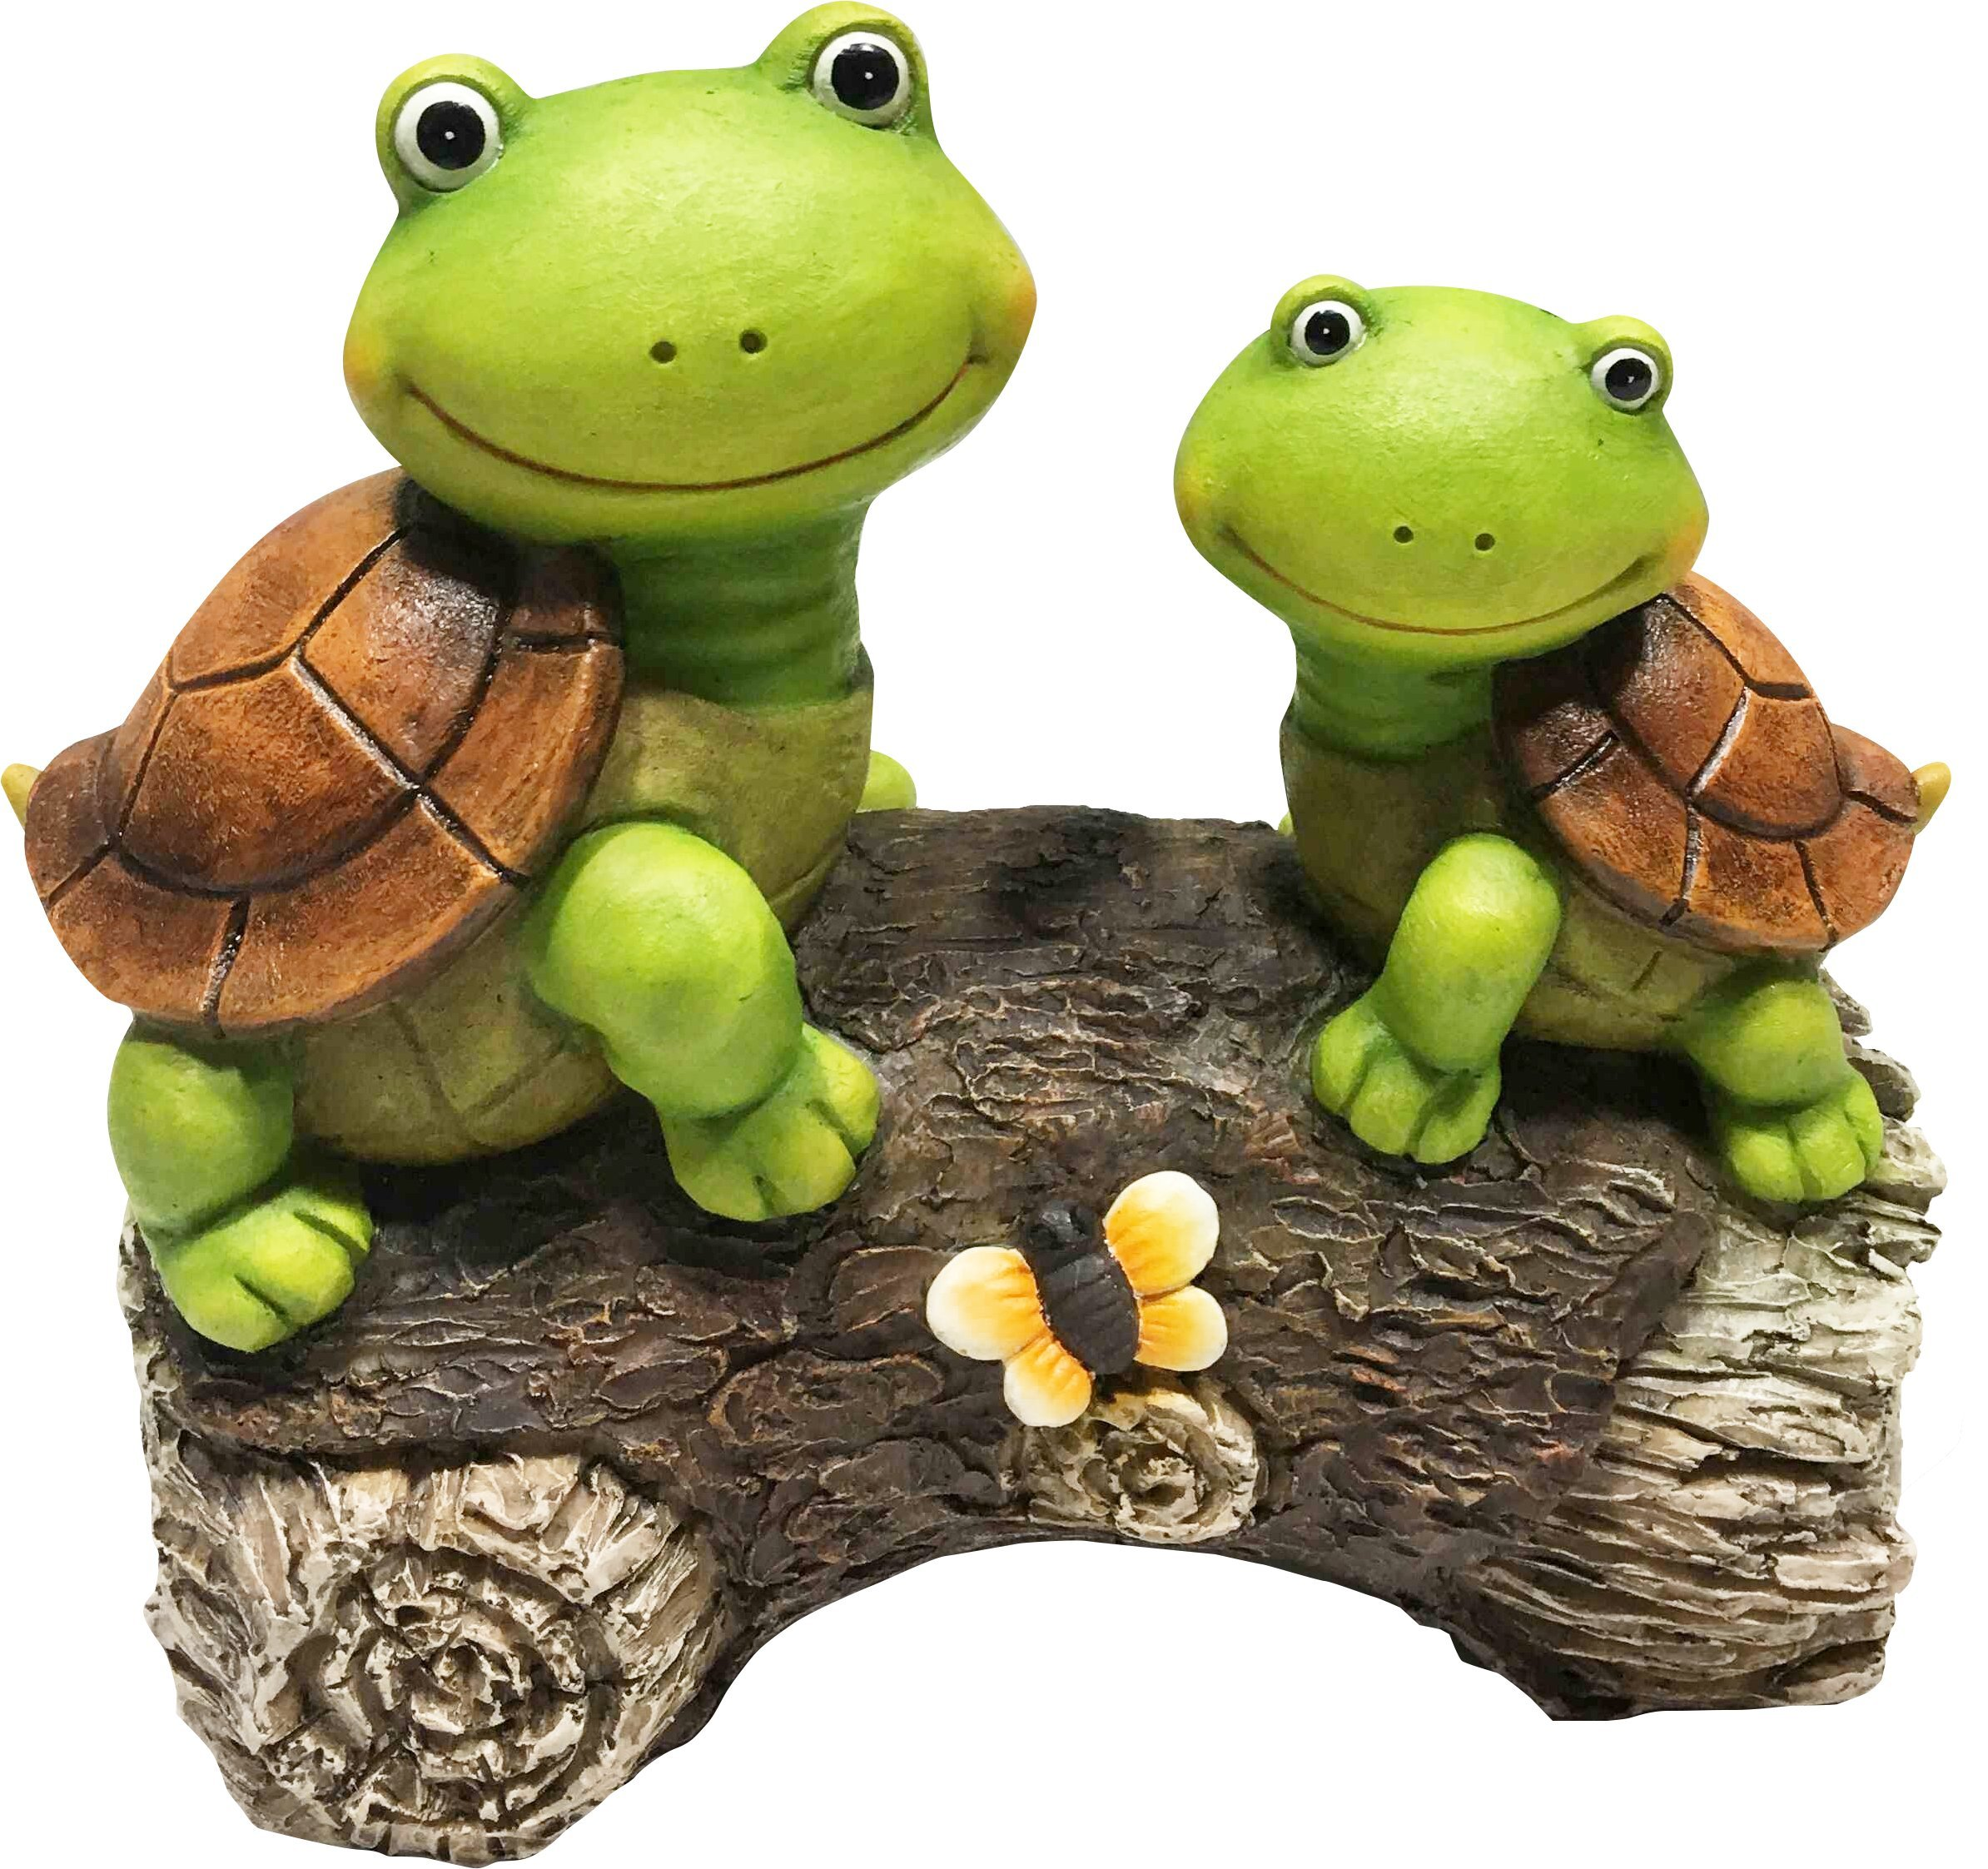 LA JOLIE MUSE Garden Statue Outdoor Figurines Turtles on a Log for Patio Lawn Yard Gardening Decor, 9Inch (Turtle)